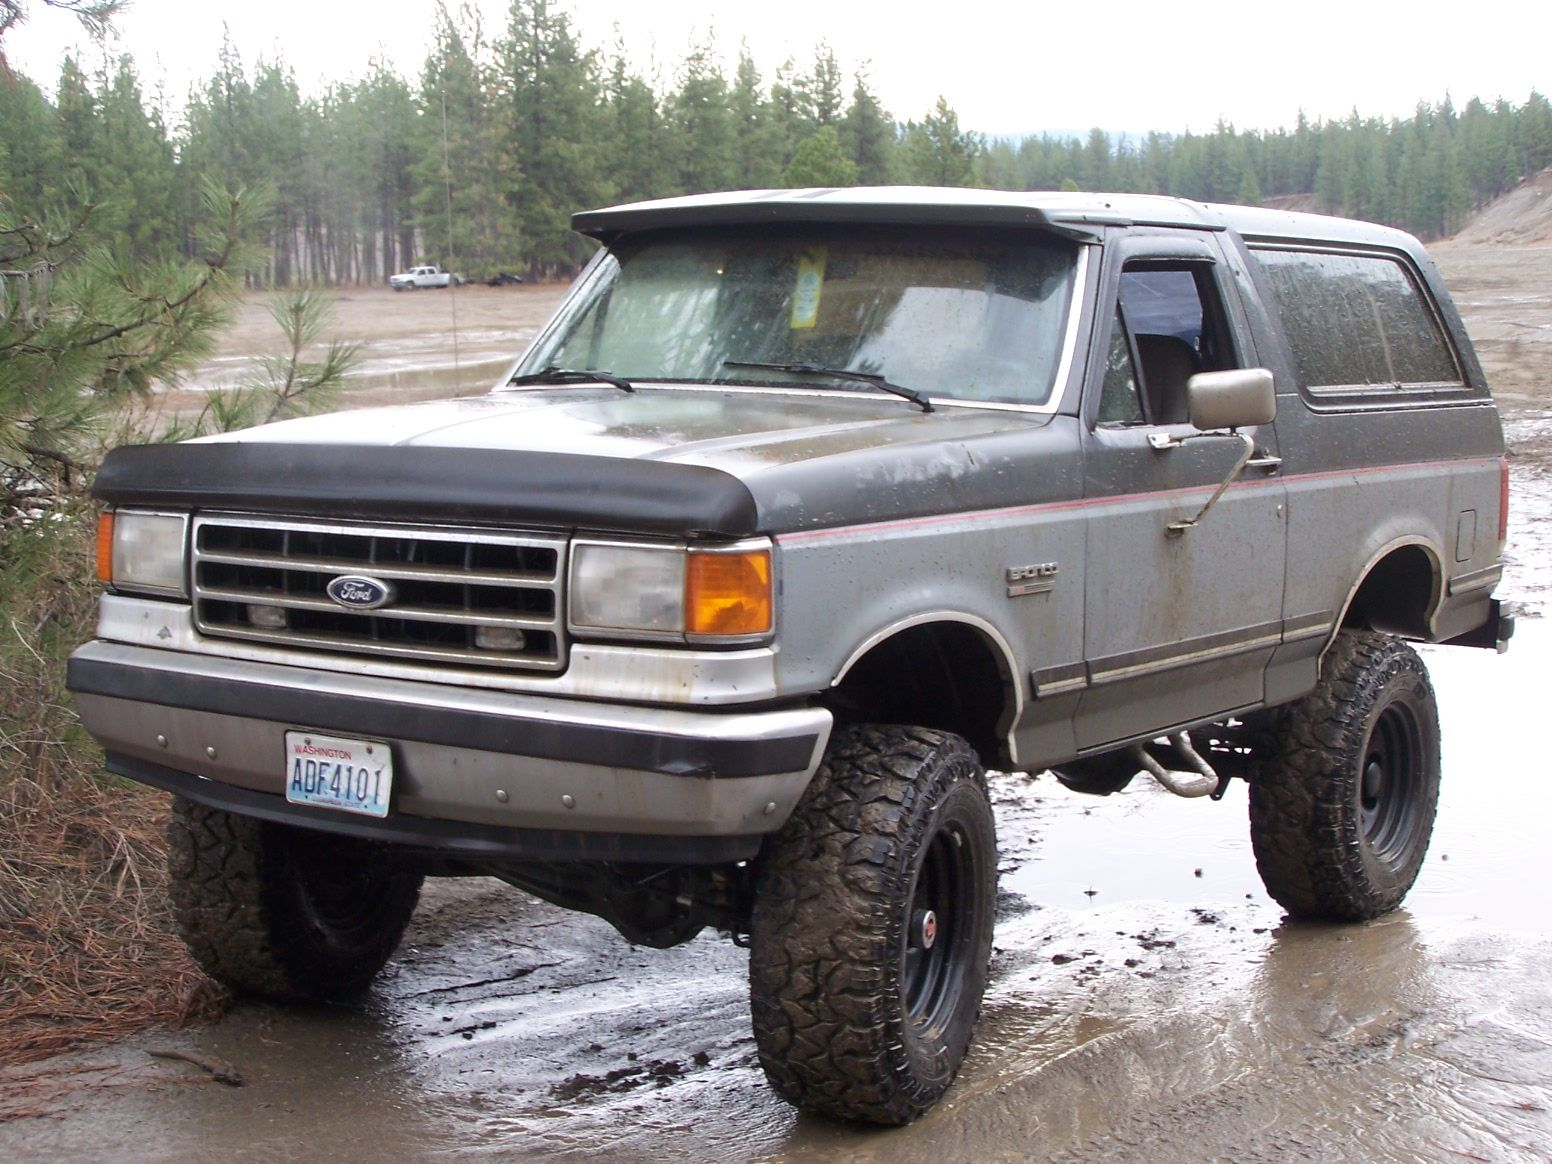 For Nearly 20 Years Rocky Roads Has Been An Authority In Bronco Sales New Used Parts Vehicle Consignment Bronco Services Res Ford Bronco Bronco Ford Suv